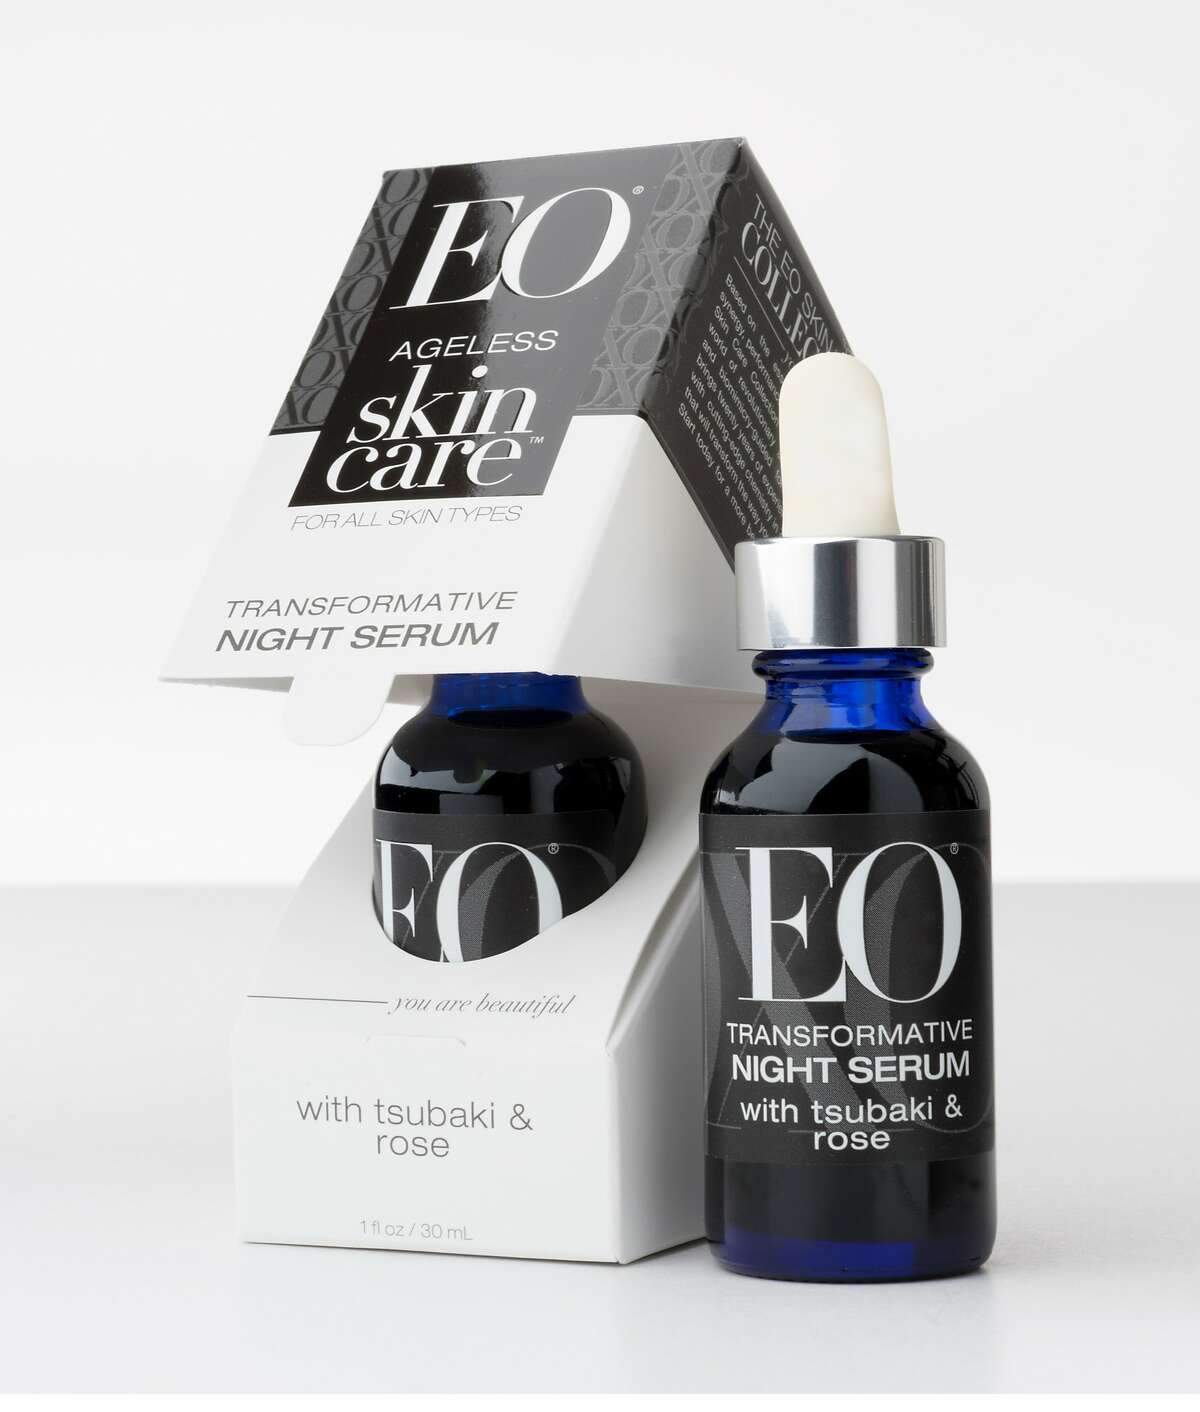 EO Products Ageless Skin Care Transformative Night Serum with Tsubaki and Rose. Available at www.eoproducts.com.